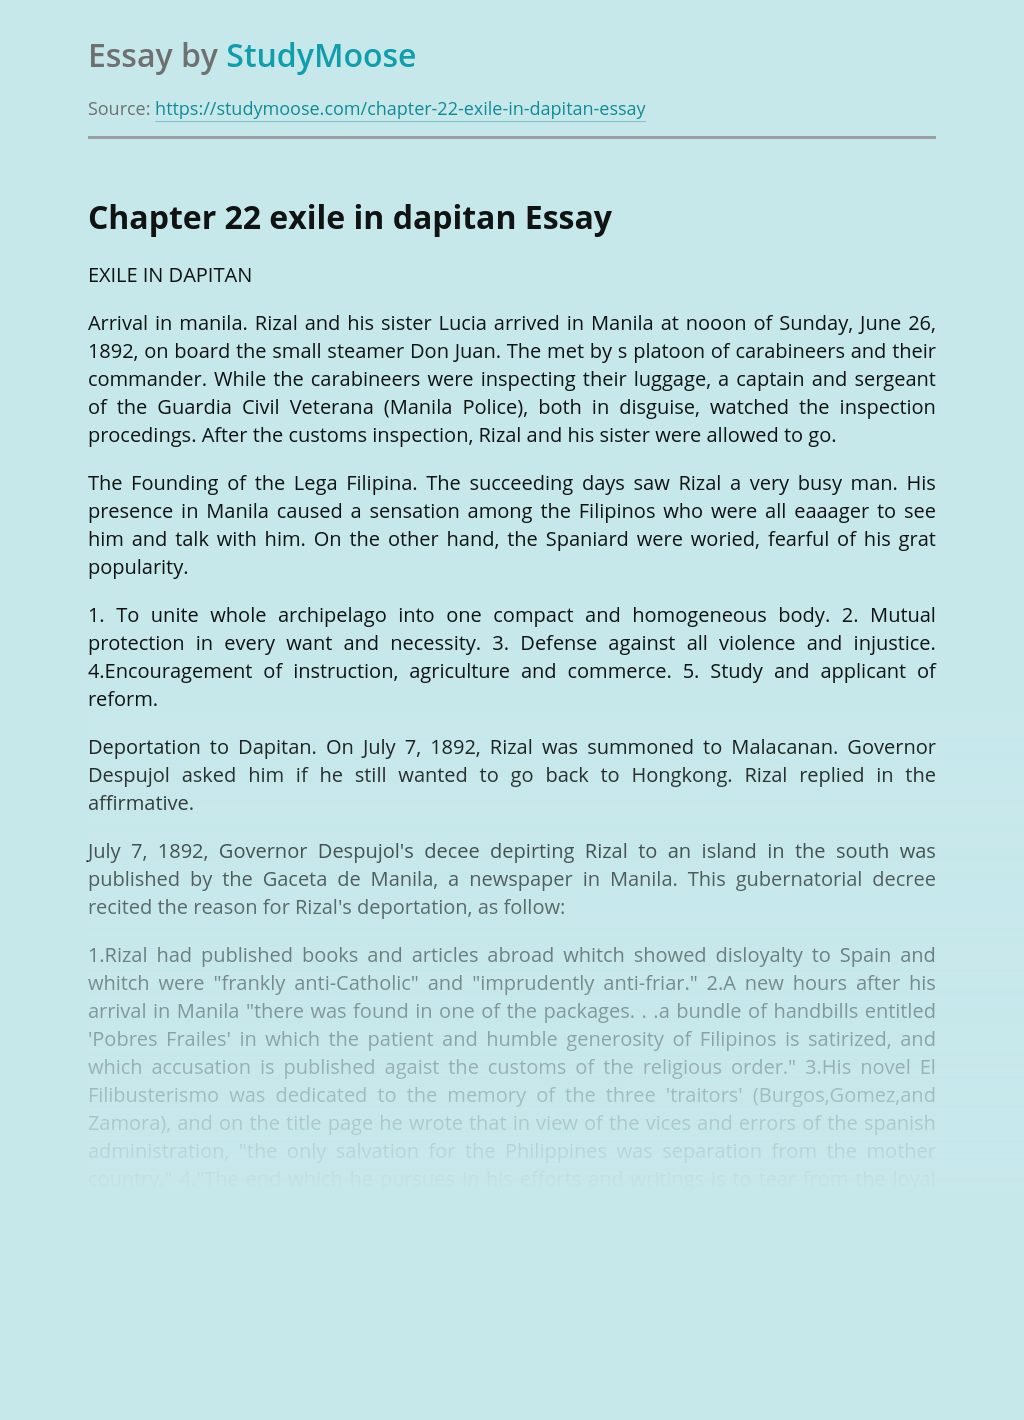 Chapter 22 exile in dapitan